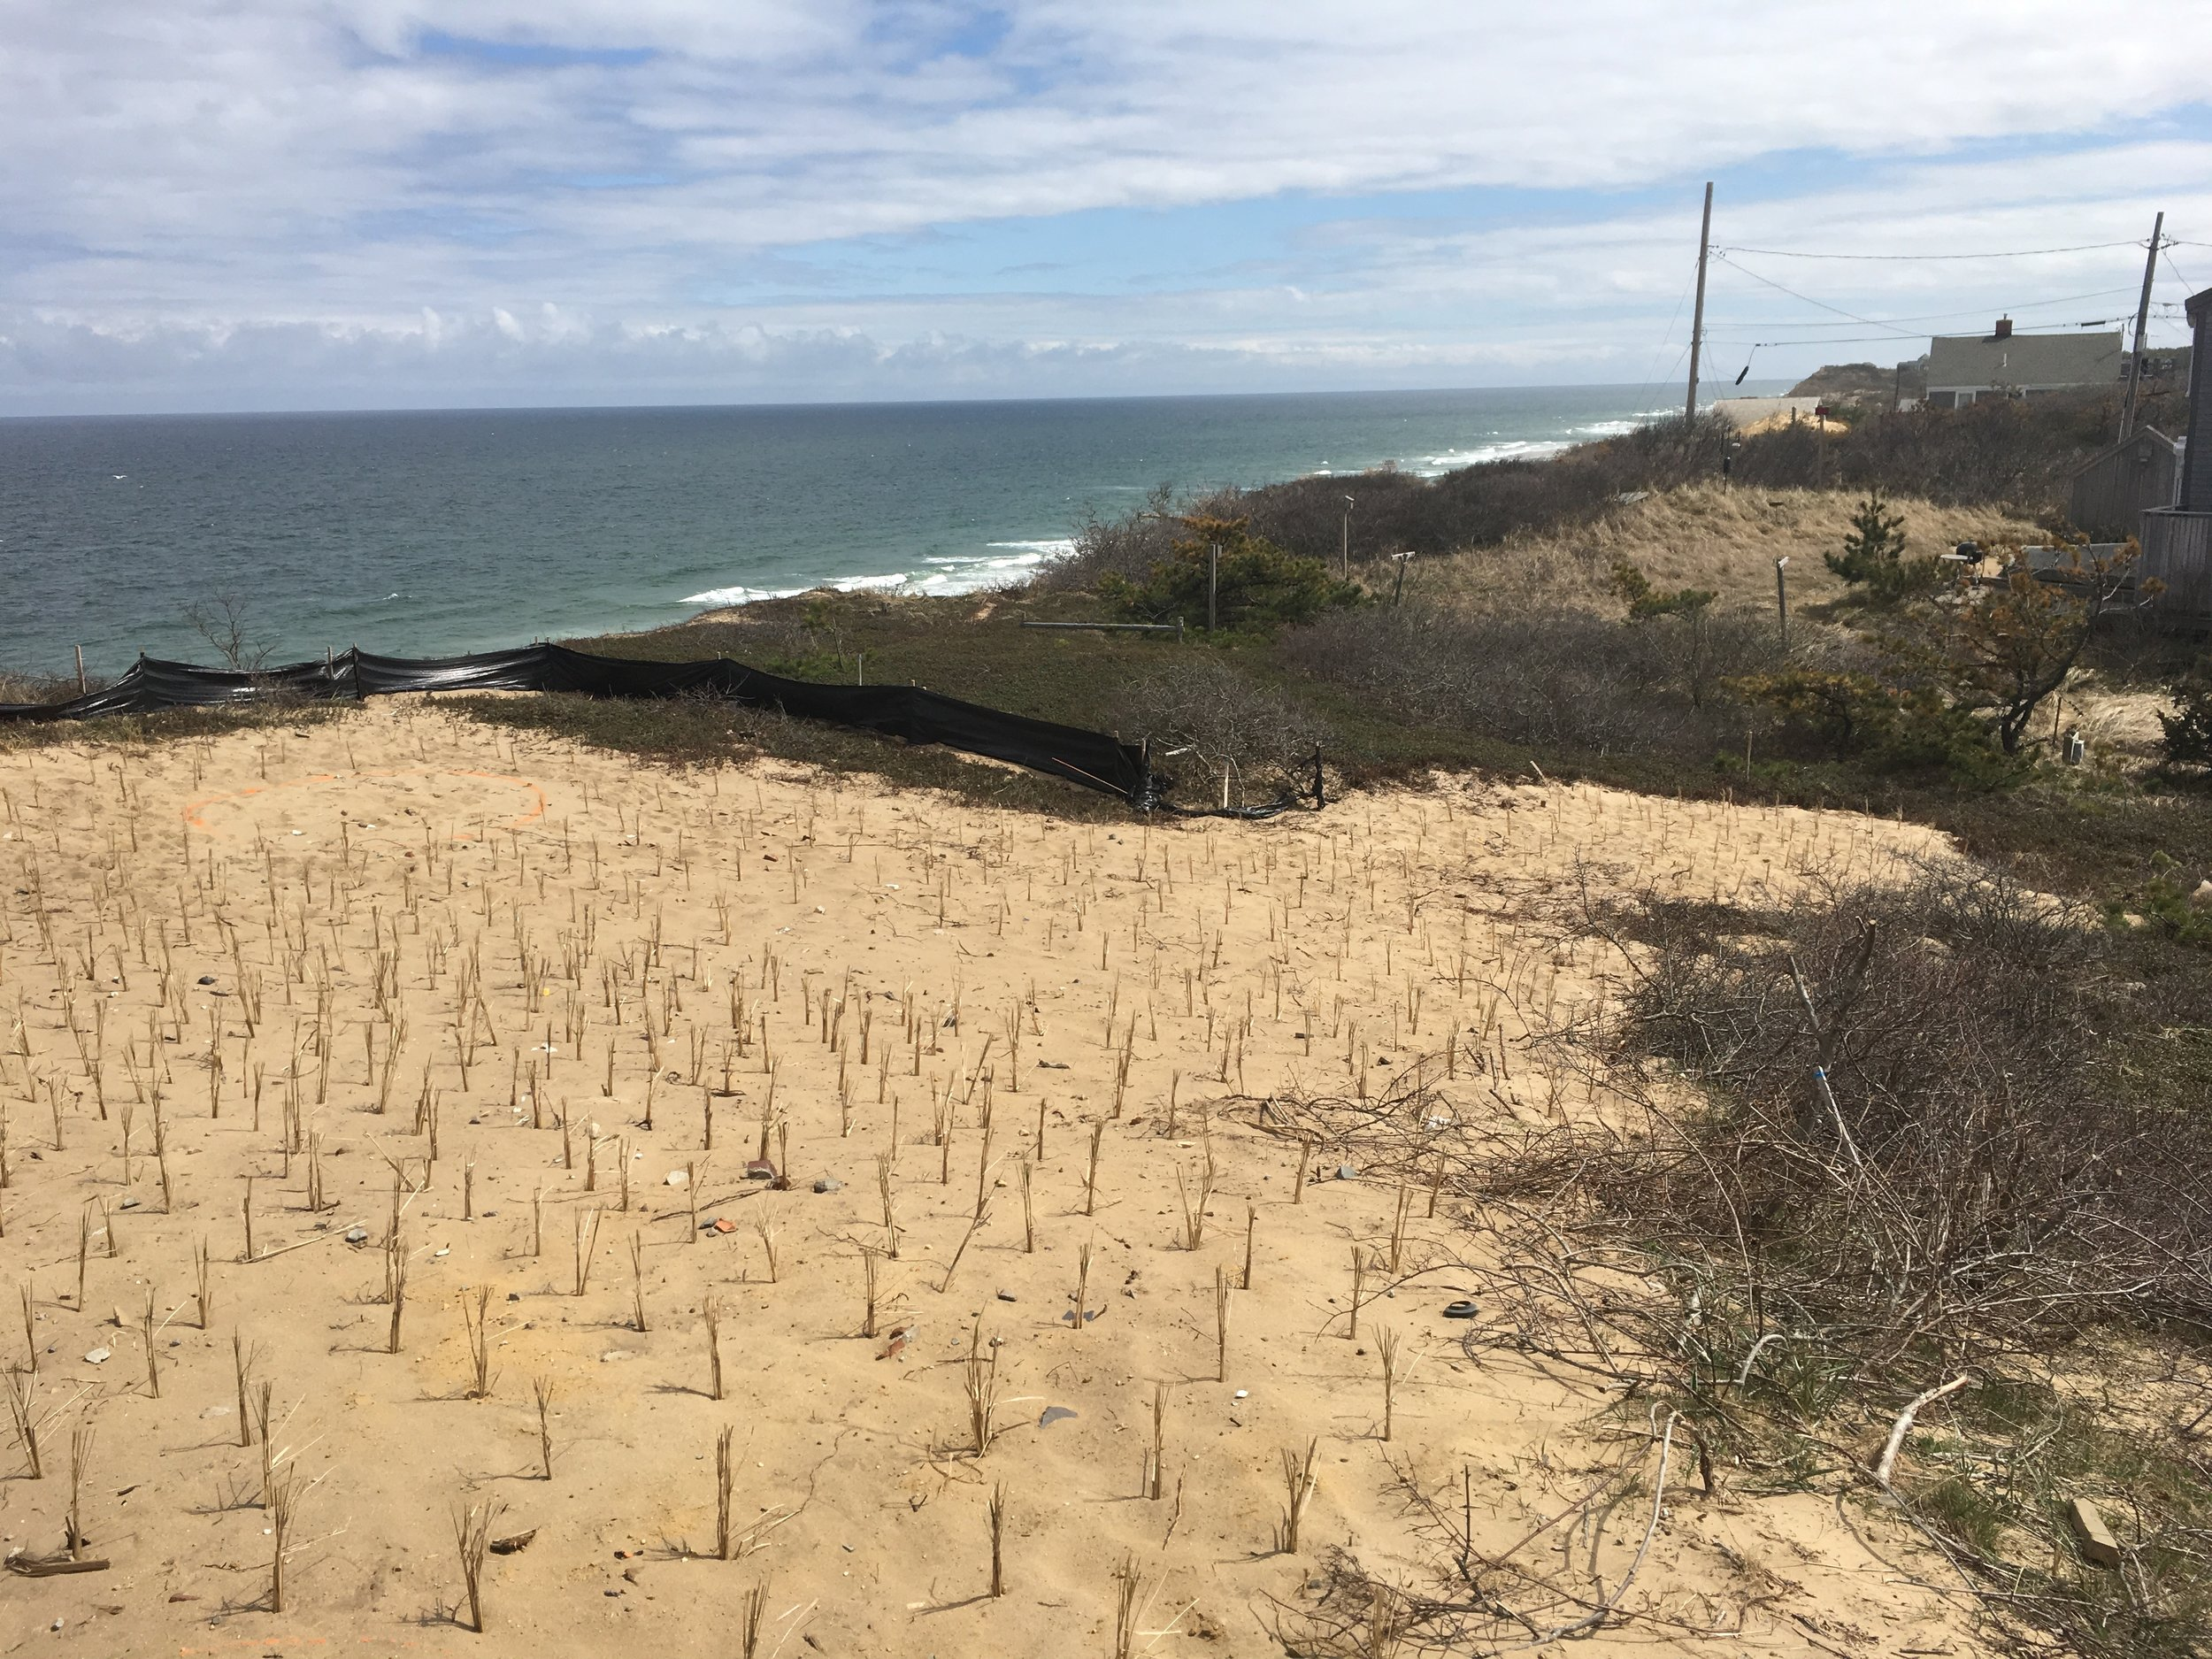 DURING: View of newly planted beachgrass